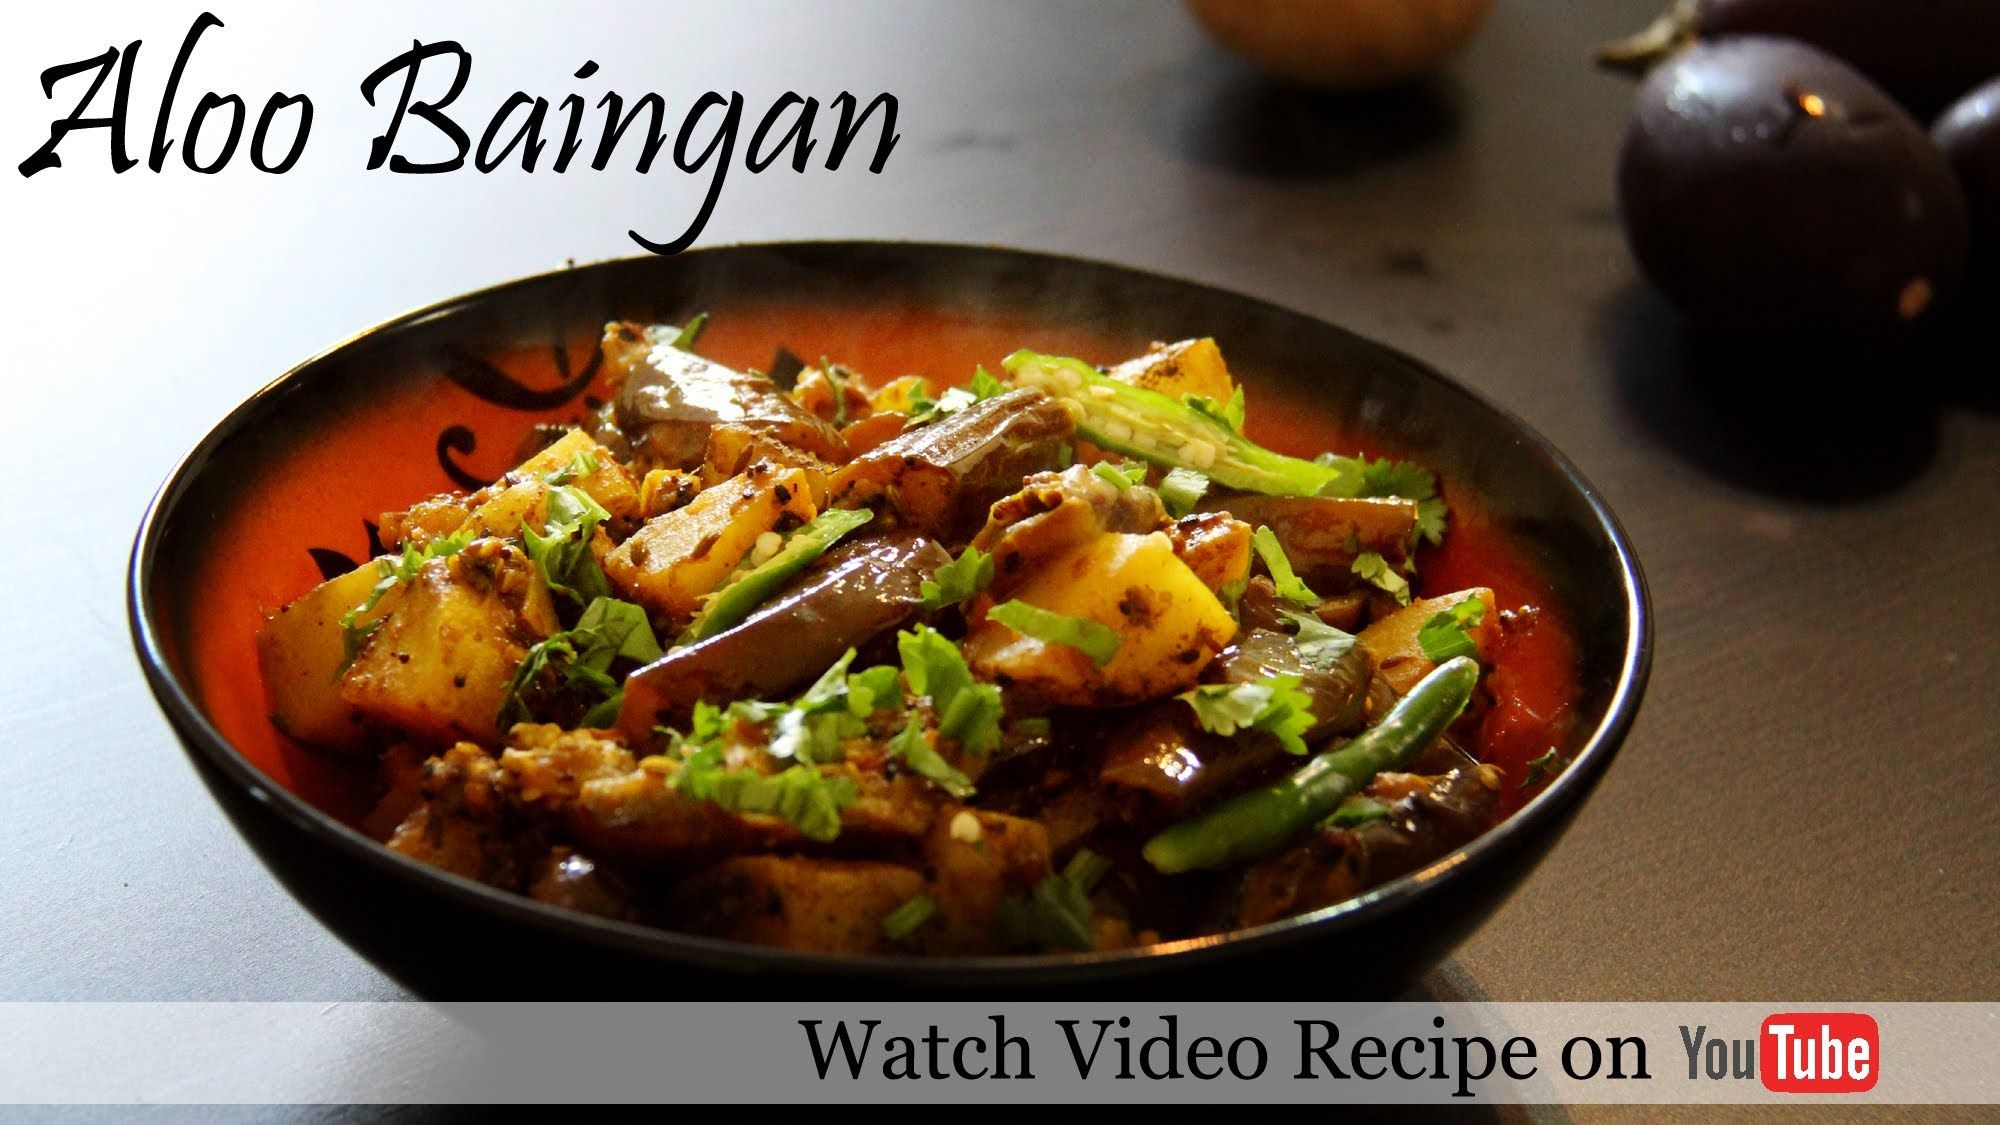 Aloo baingan recipe video potato eggplant brinjal recipes food aloo baingan recipe video forumfinder